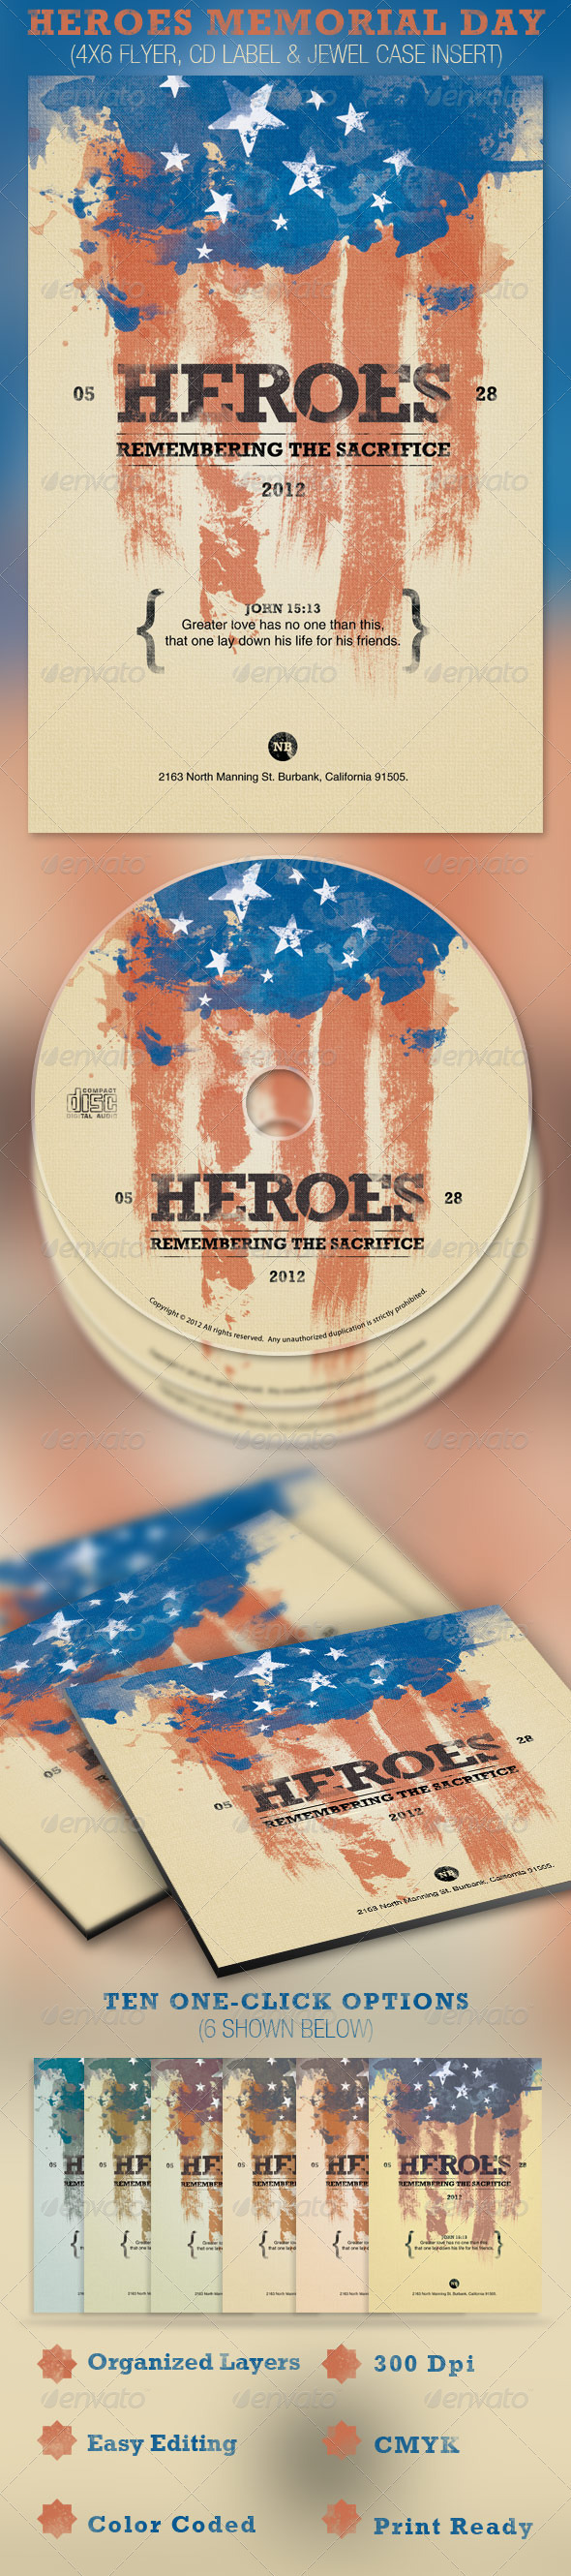 Heroes Memorial Day Flyer and CD Template - Church Flyers